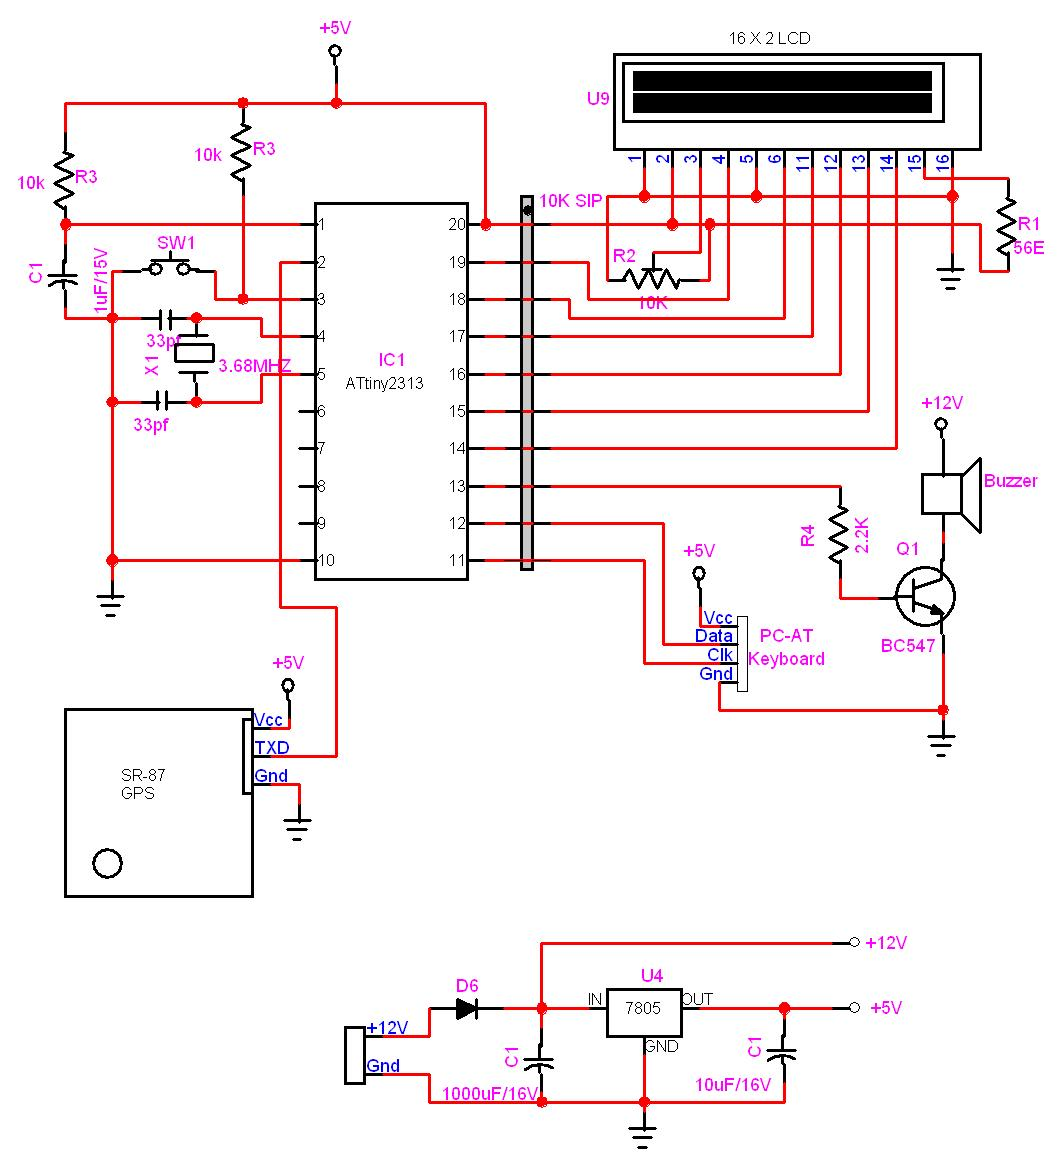 Avr Microcontroller Circuit Page 4 Circuits Serial And Pic Programmer Gps Locator Using